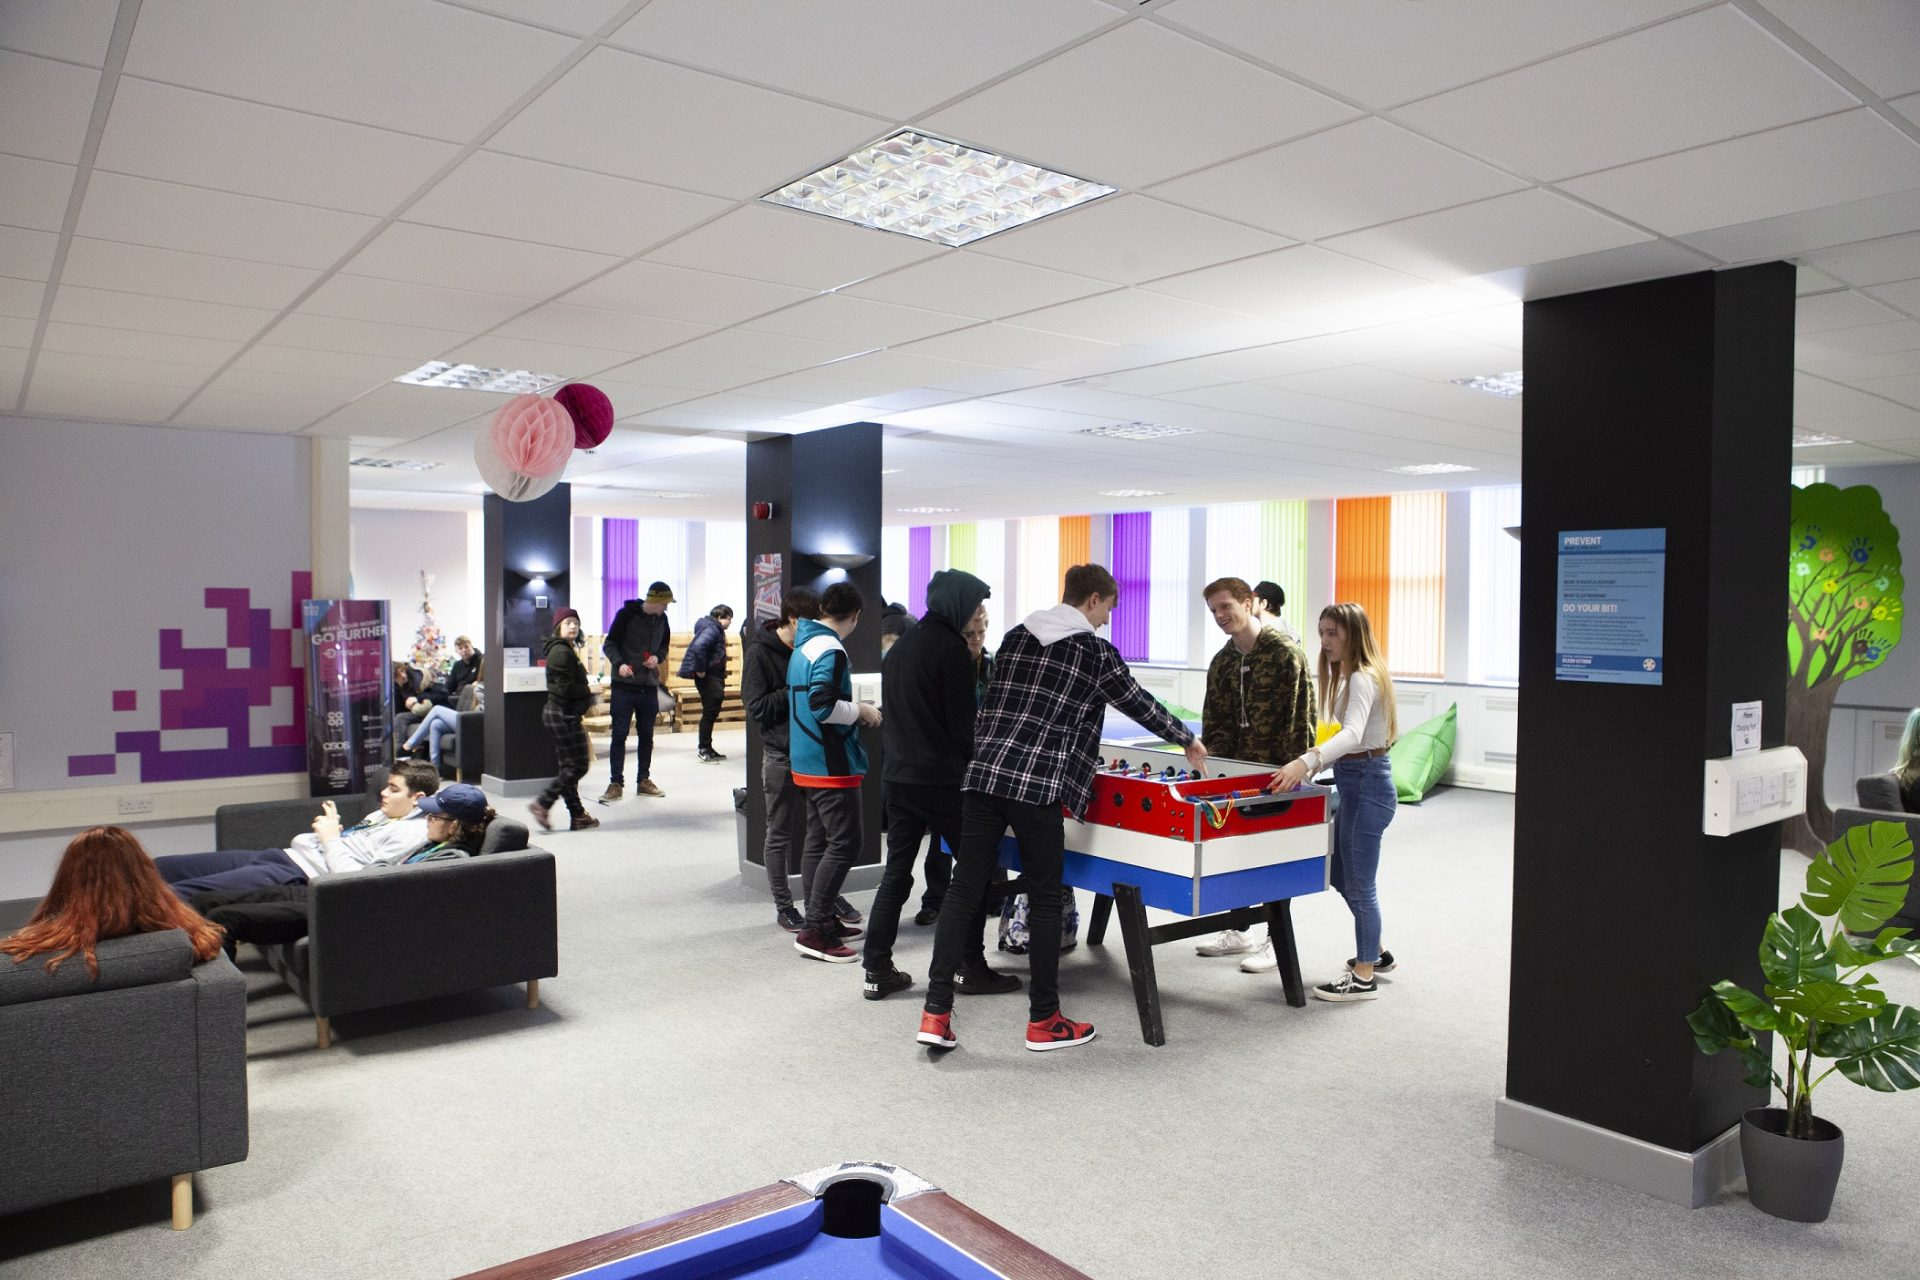 Cornwall College St Austell student zone called The Space - wide shot of whole room